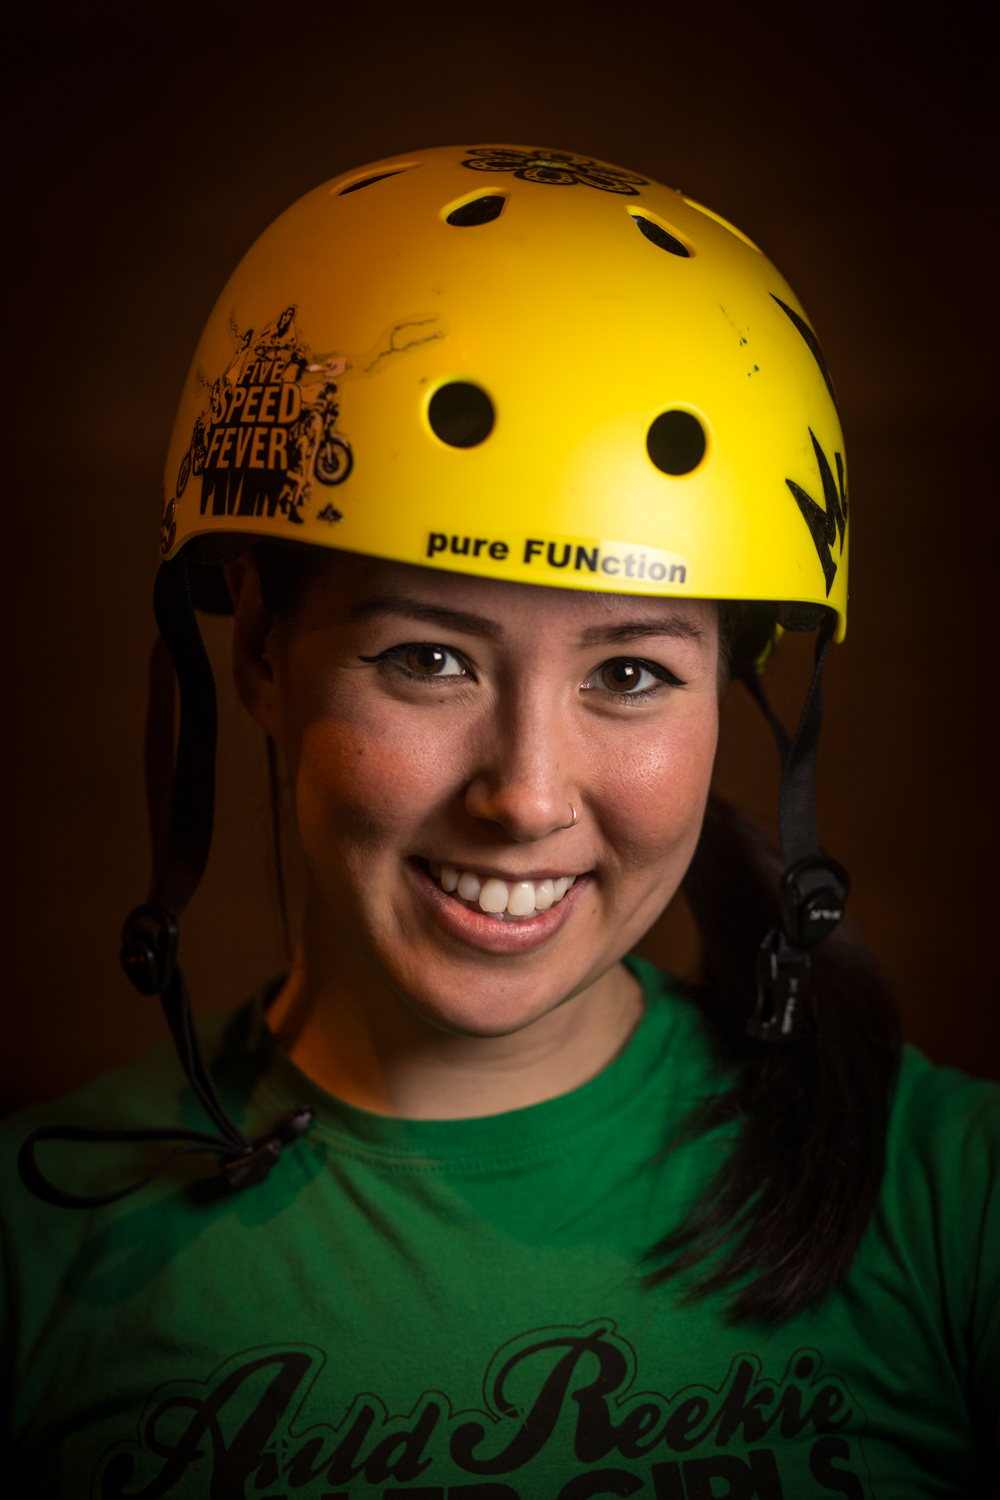 Auld Reekie Roller Girls headshots 2015 1